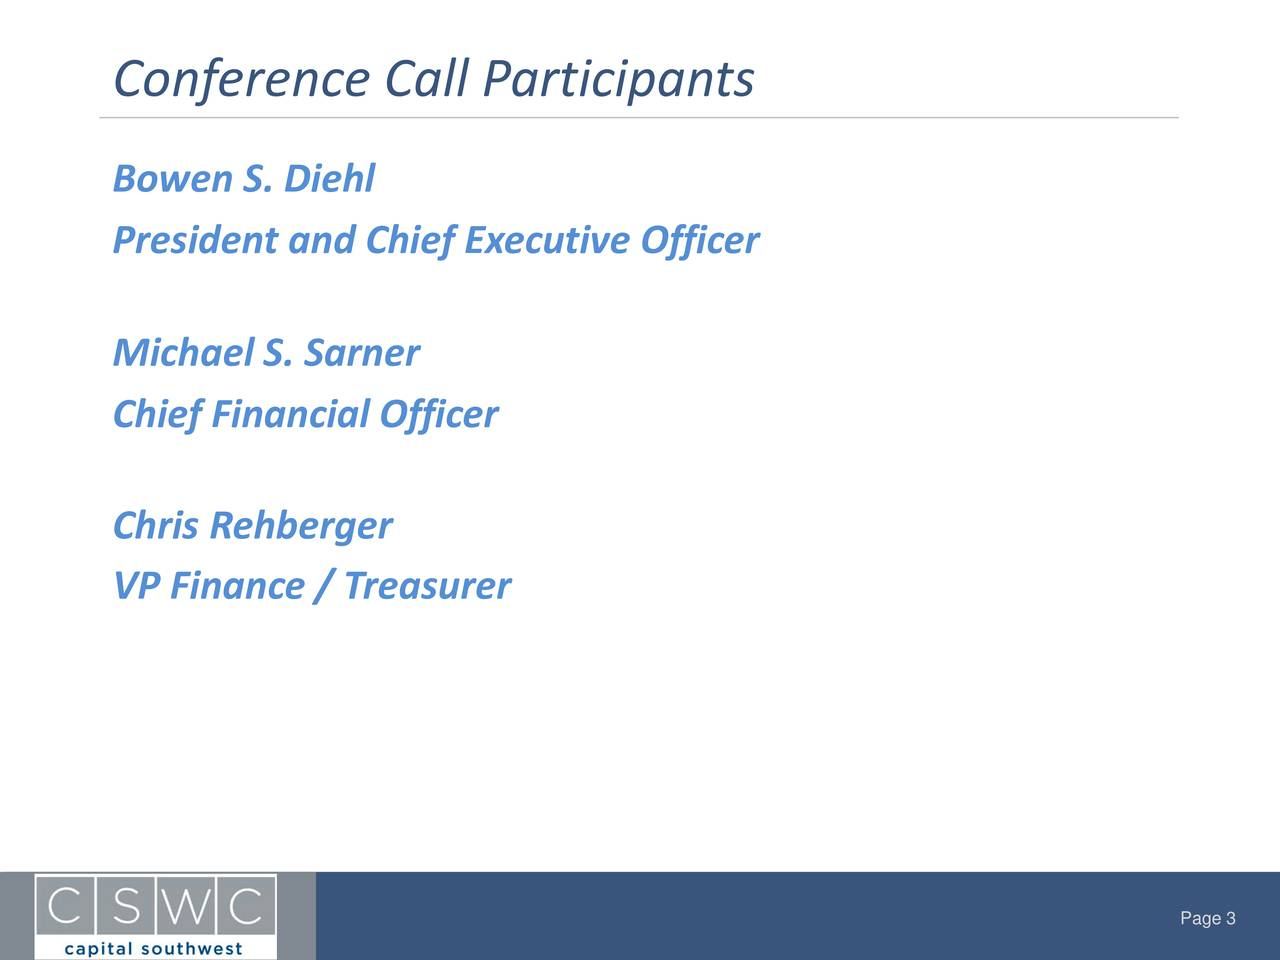 Bowen S. Diehl President and ChiefExecutive Officer Michael S. Sarner Chief Financial Officer Chris Rehberger VP Finance / Treasurer Page 3